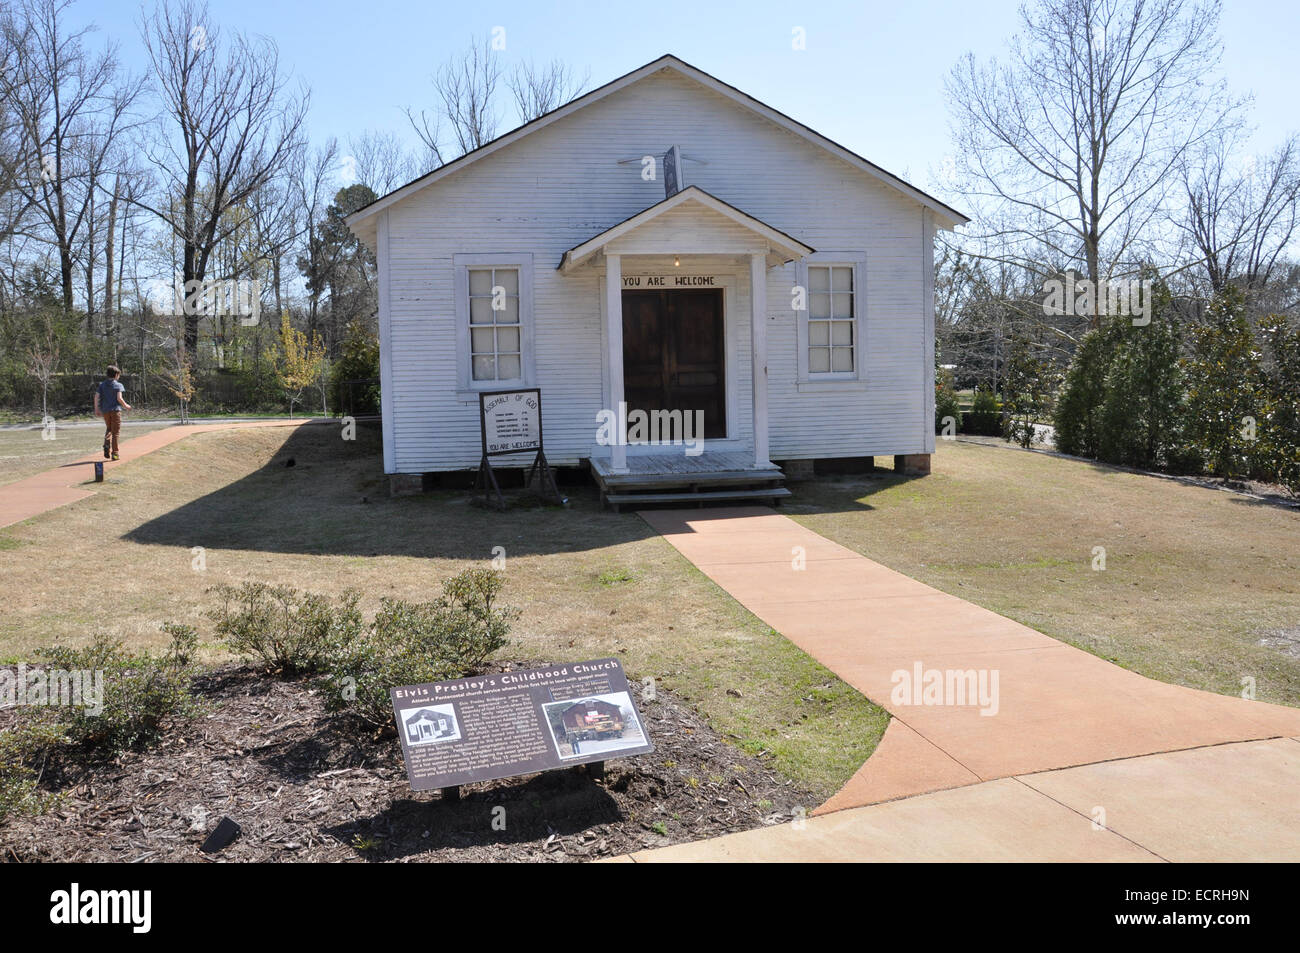 Childhood church of Elvis Presley at his birthplace in Tupelo, Mississippi - Stock Image